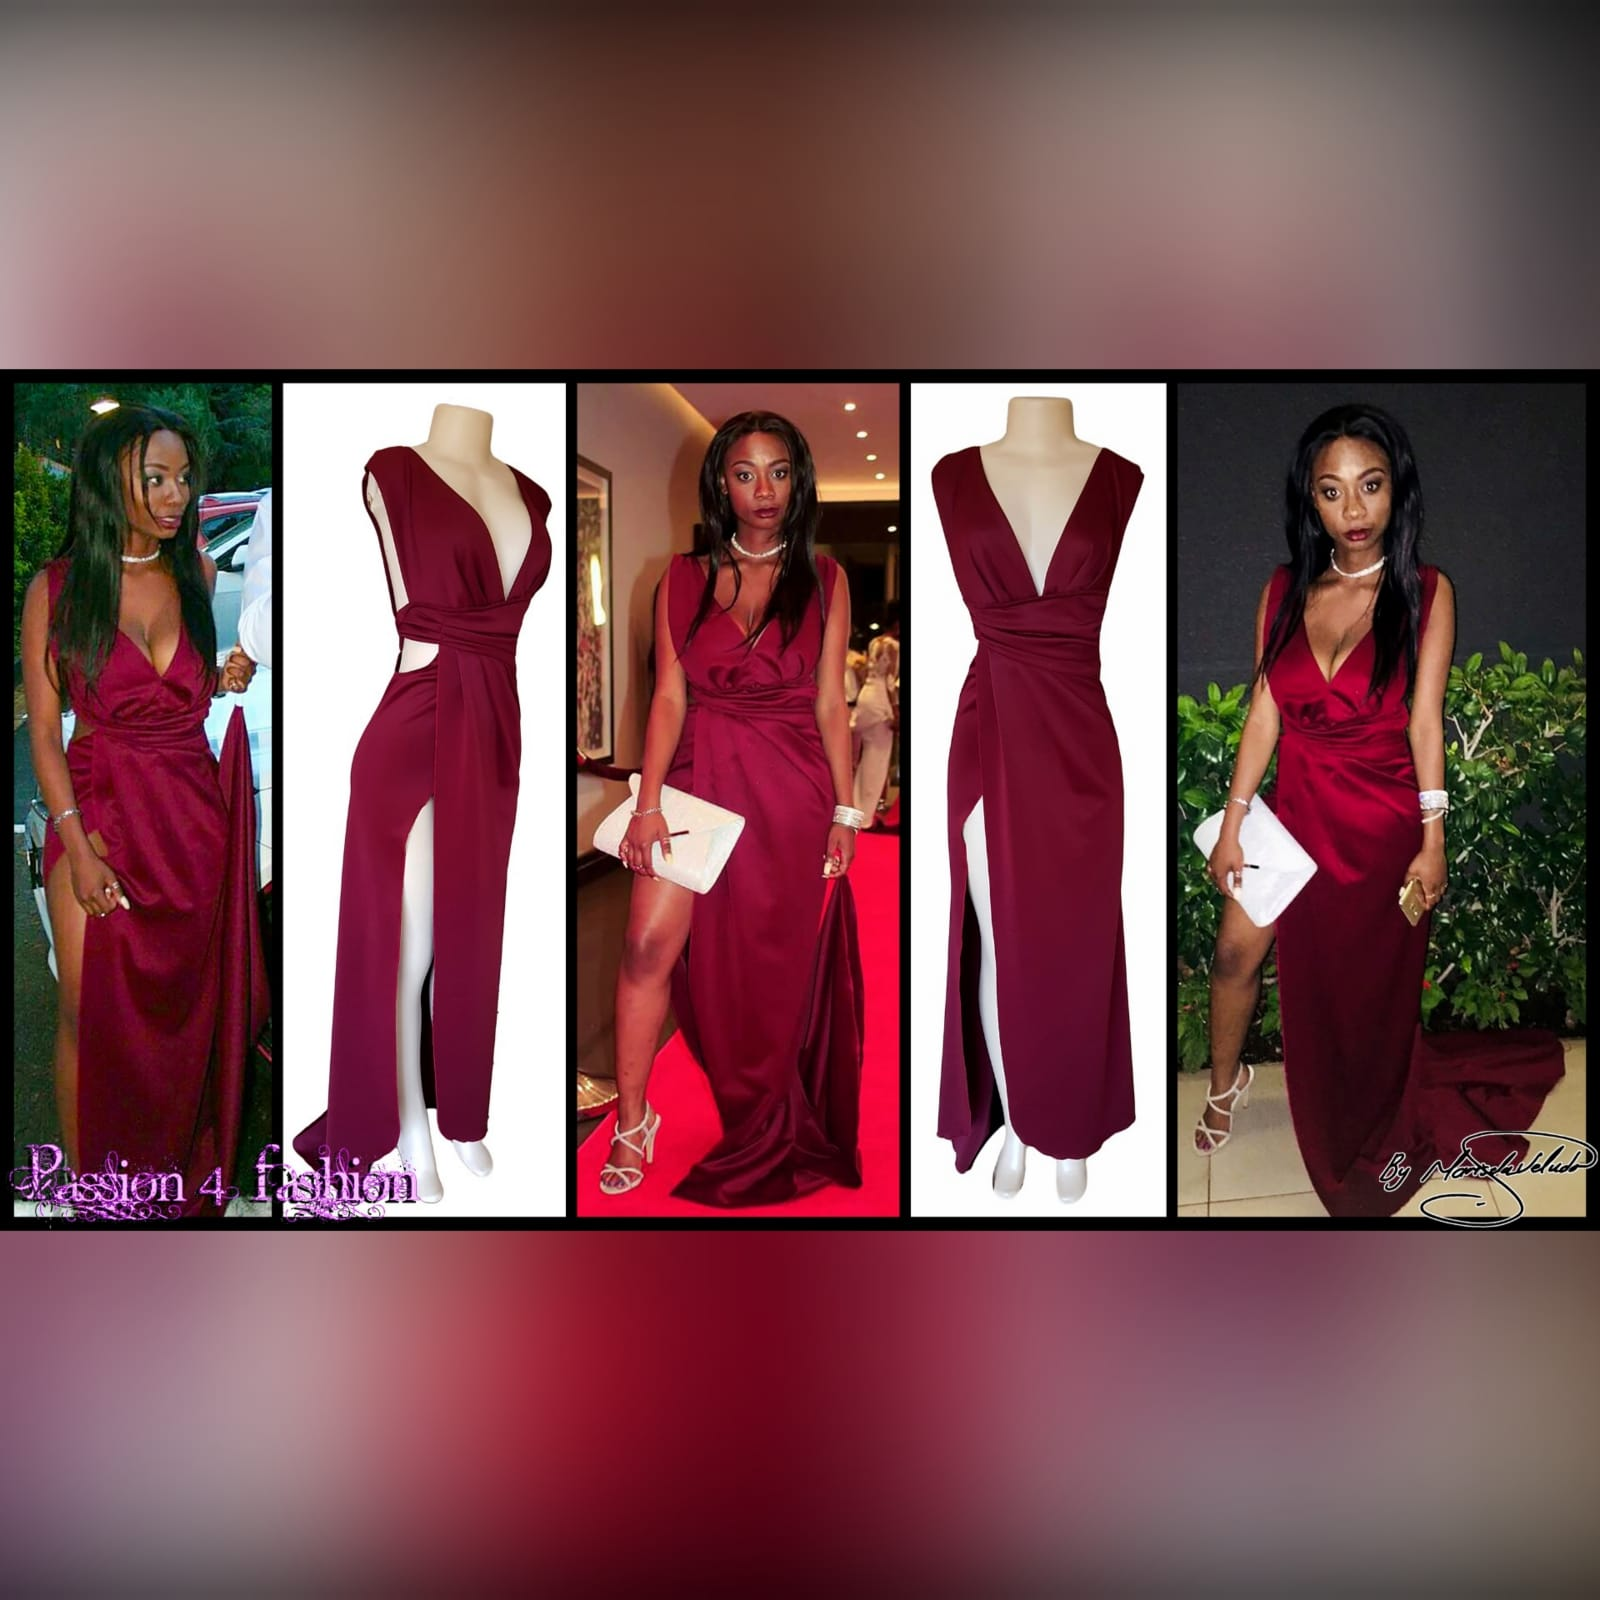 Burgundy draped long prom dress 6 burgundy draped long prom dress with a plunging neckline, sides open, crossed slit and a little train.